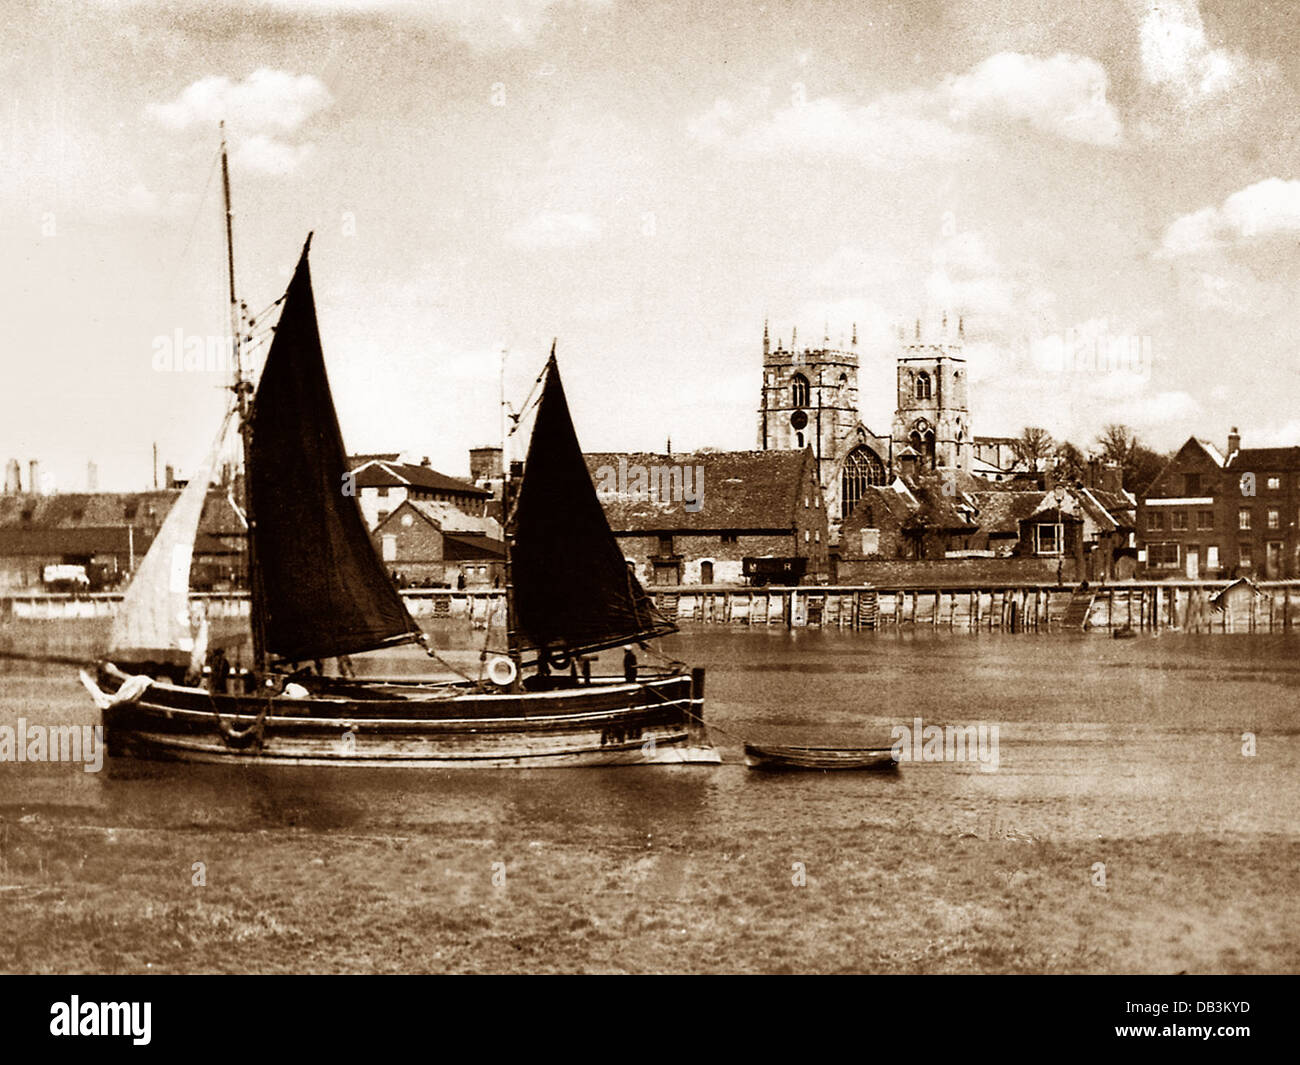 King's Lynn early 1900s - Stock Image